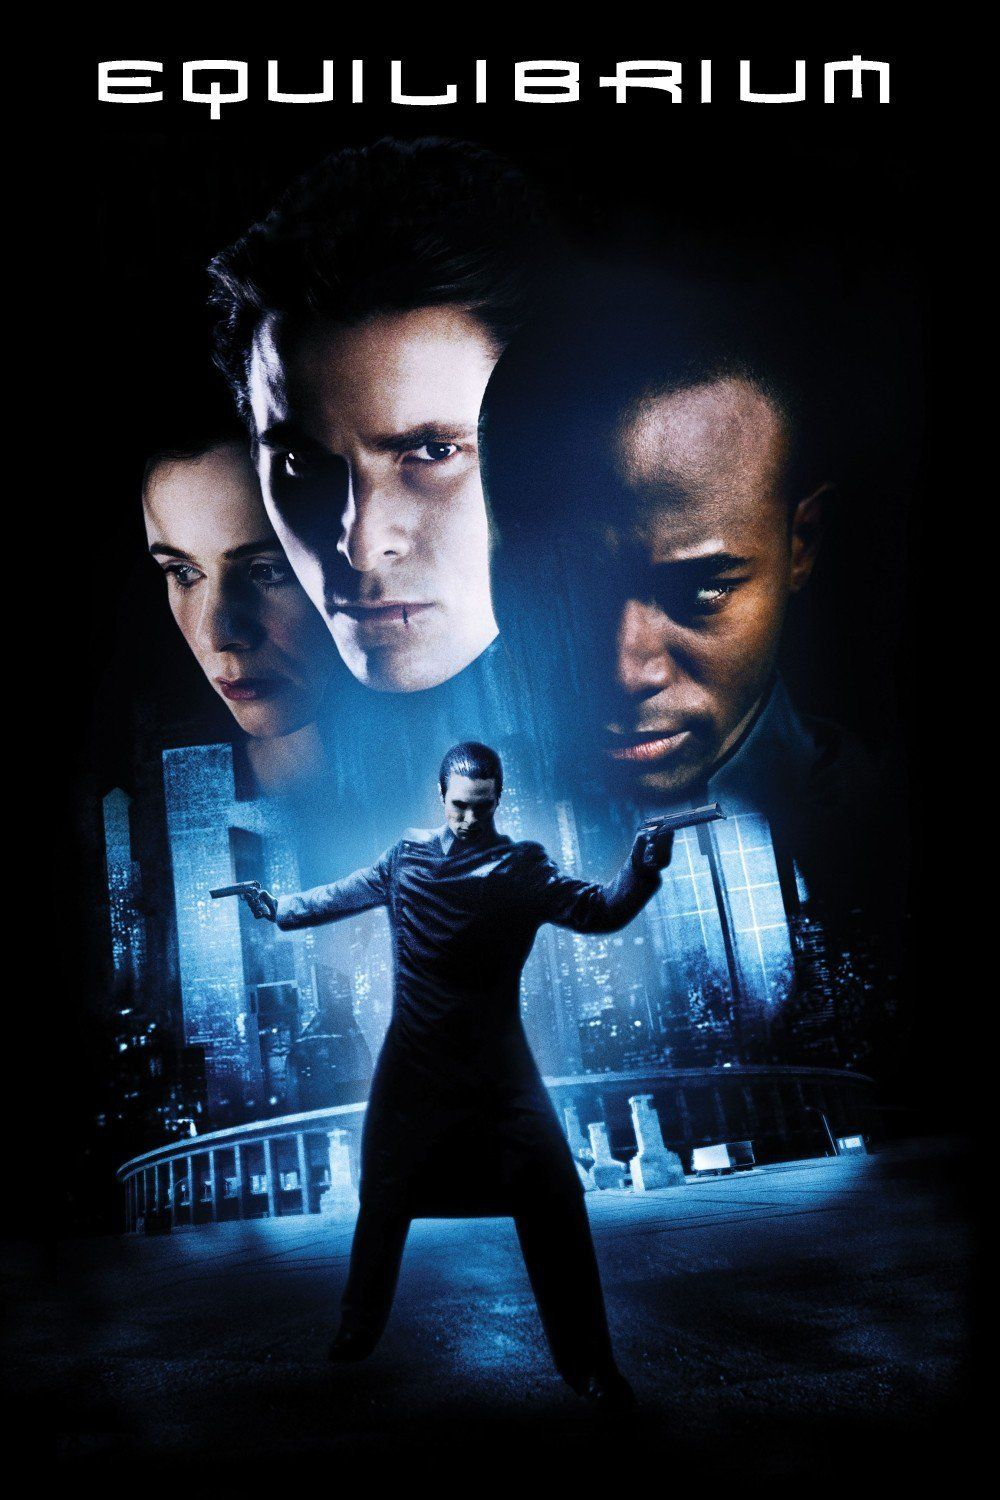 click image to watch Equilibrium (2002)